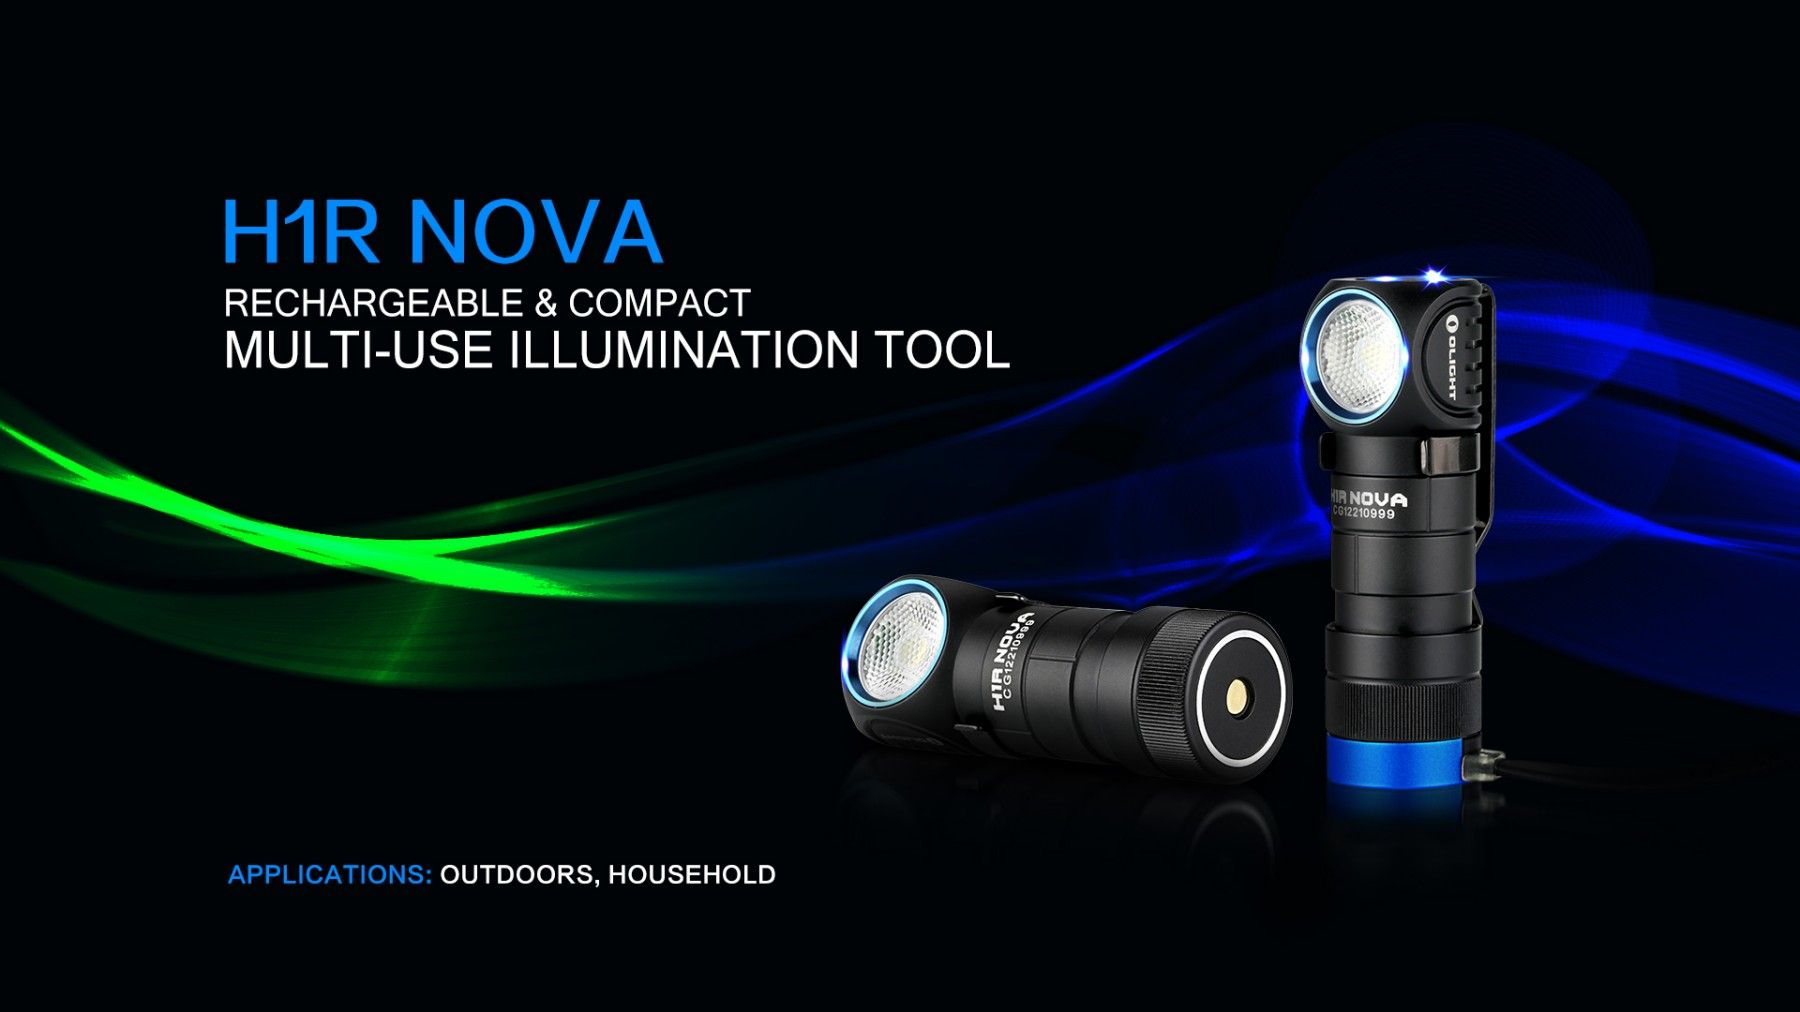 olight h1r nova 600 lumen edc und head light neutral white aufladbar led - Led Lampen Lumen